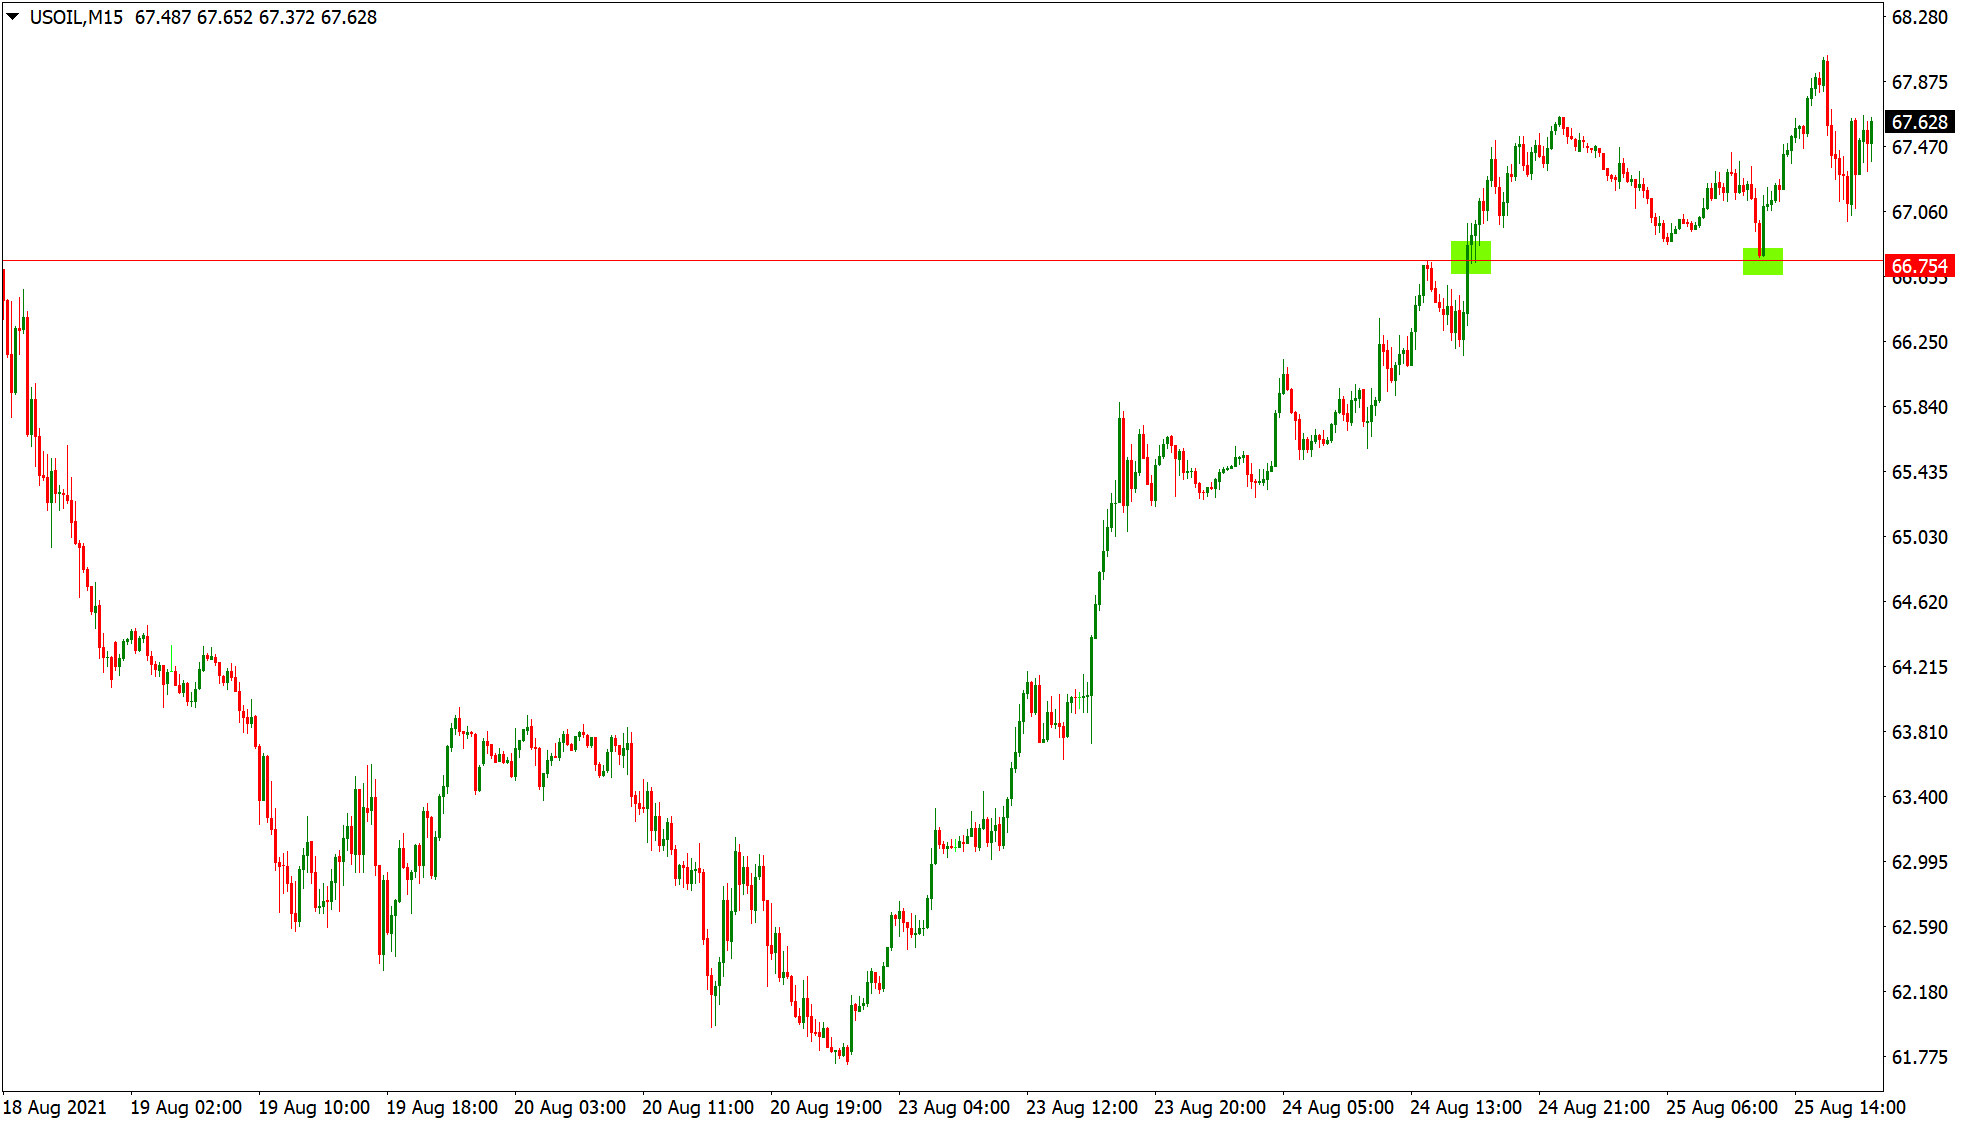 Price returning to support and resistance on USOIL